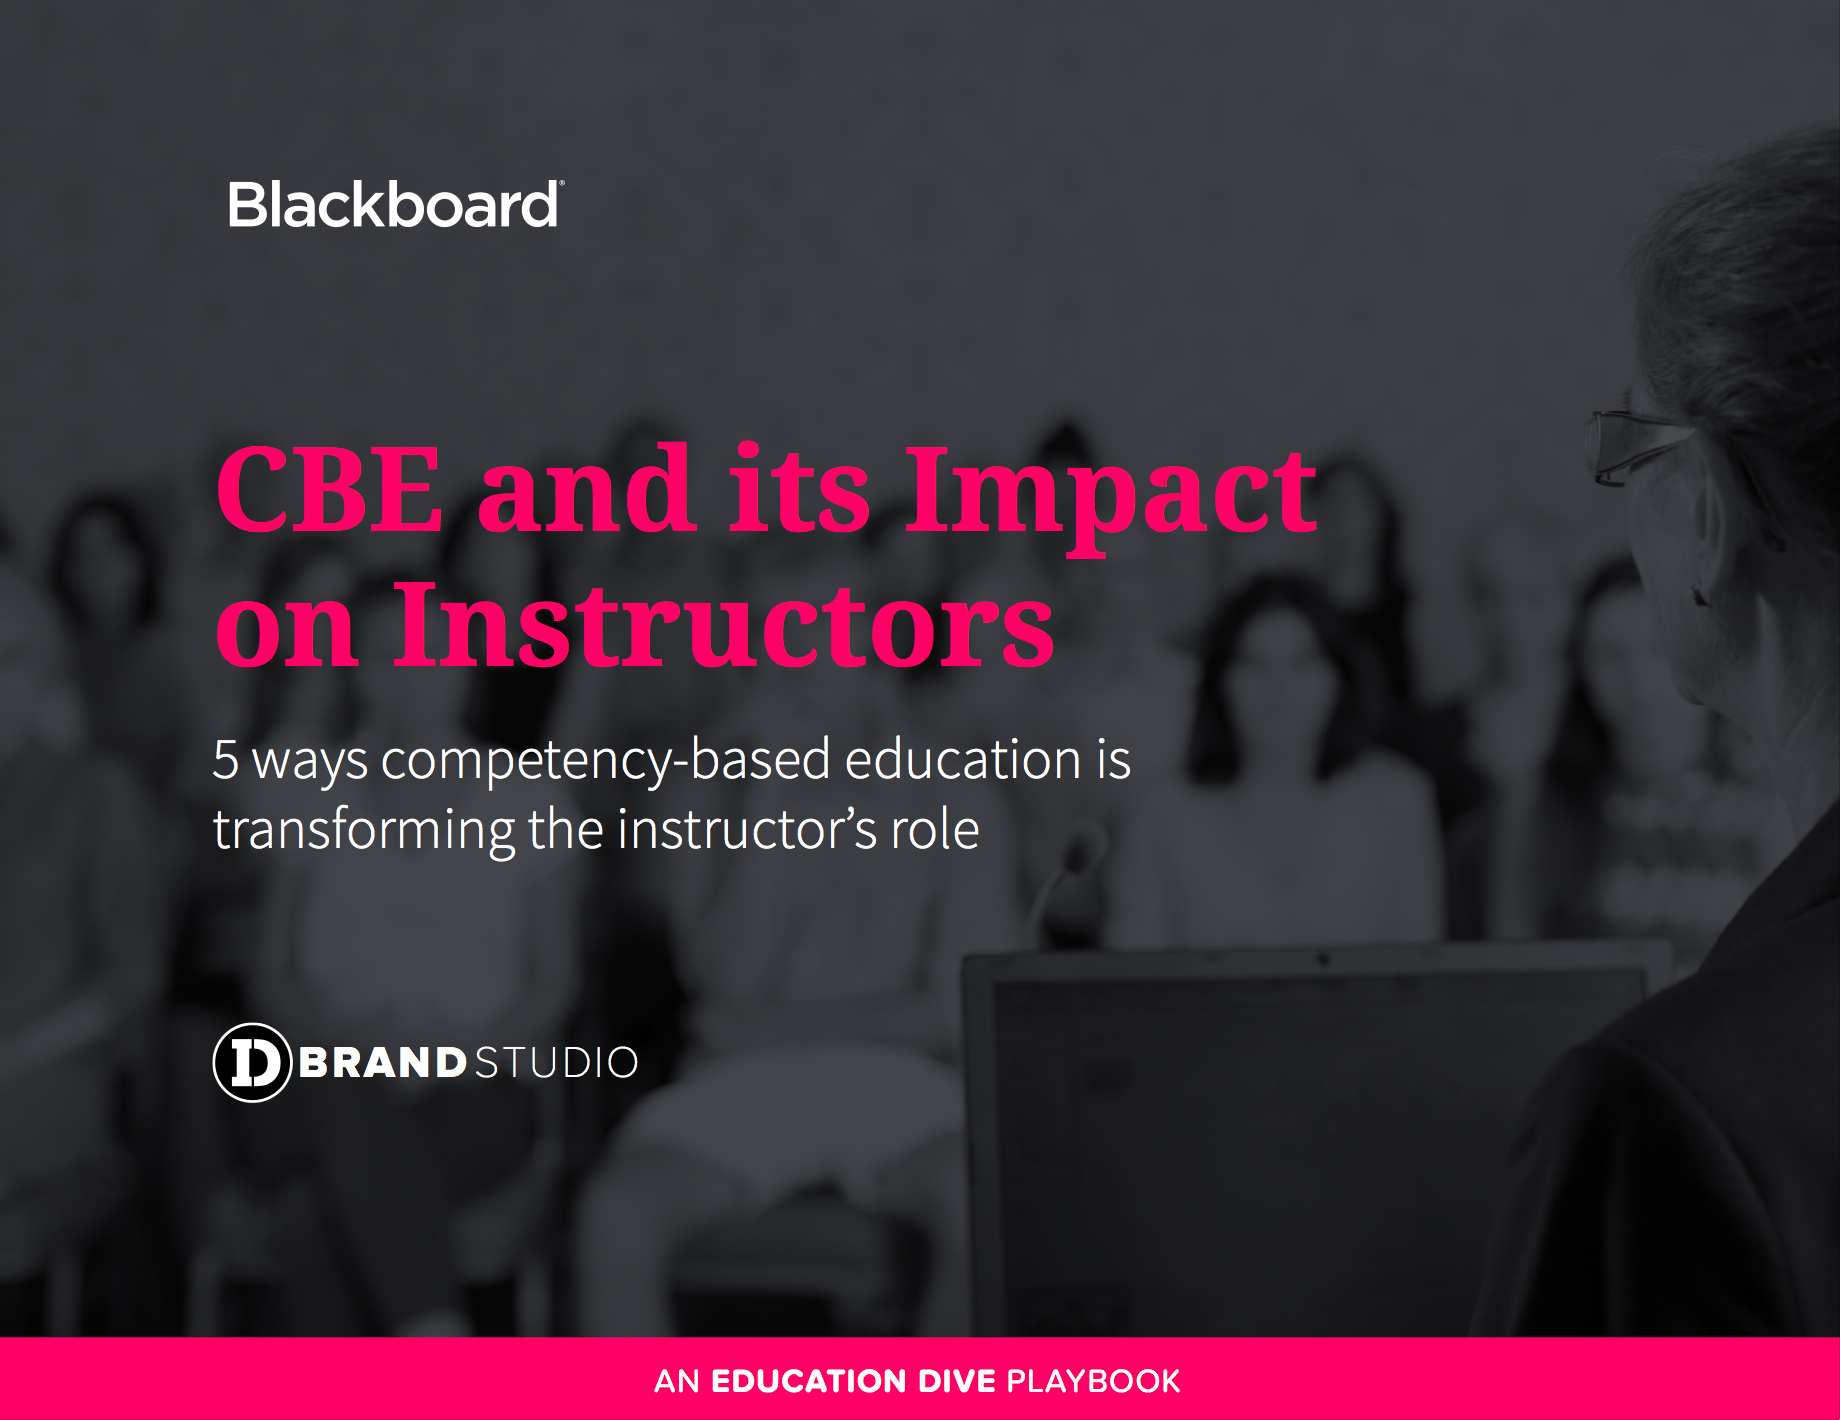 CBE and its Impact on Instructors: